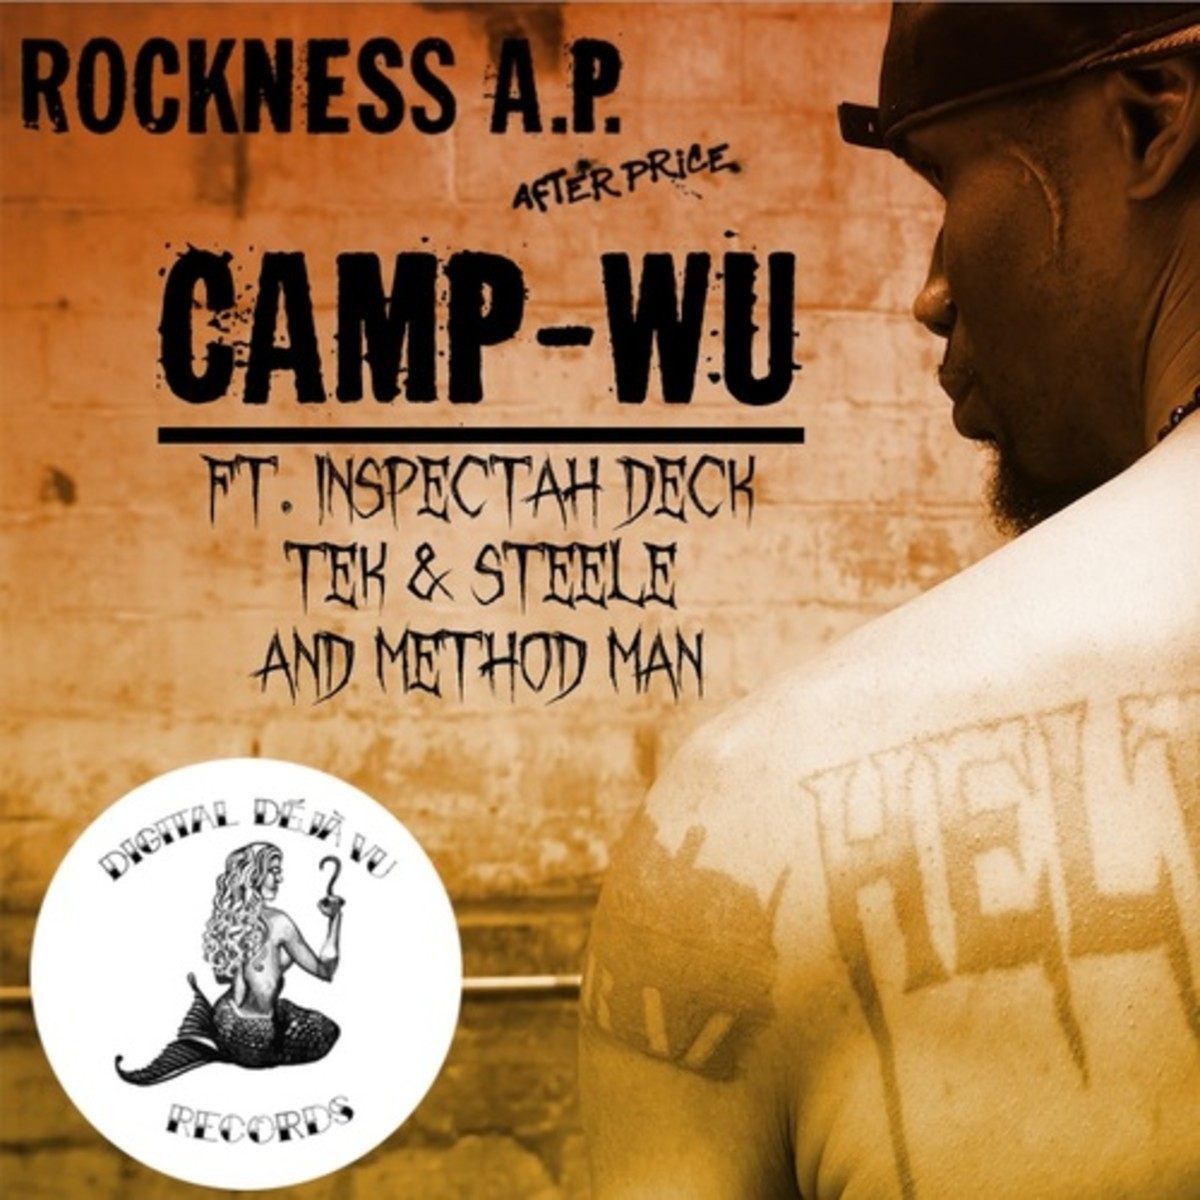 rock-camp-wu.jpg